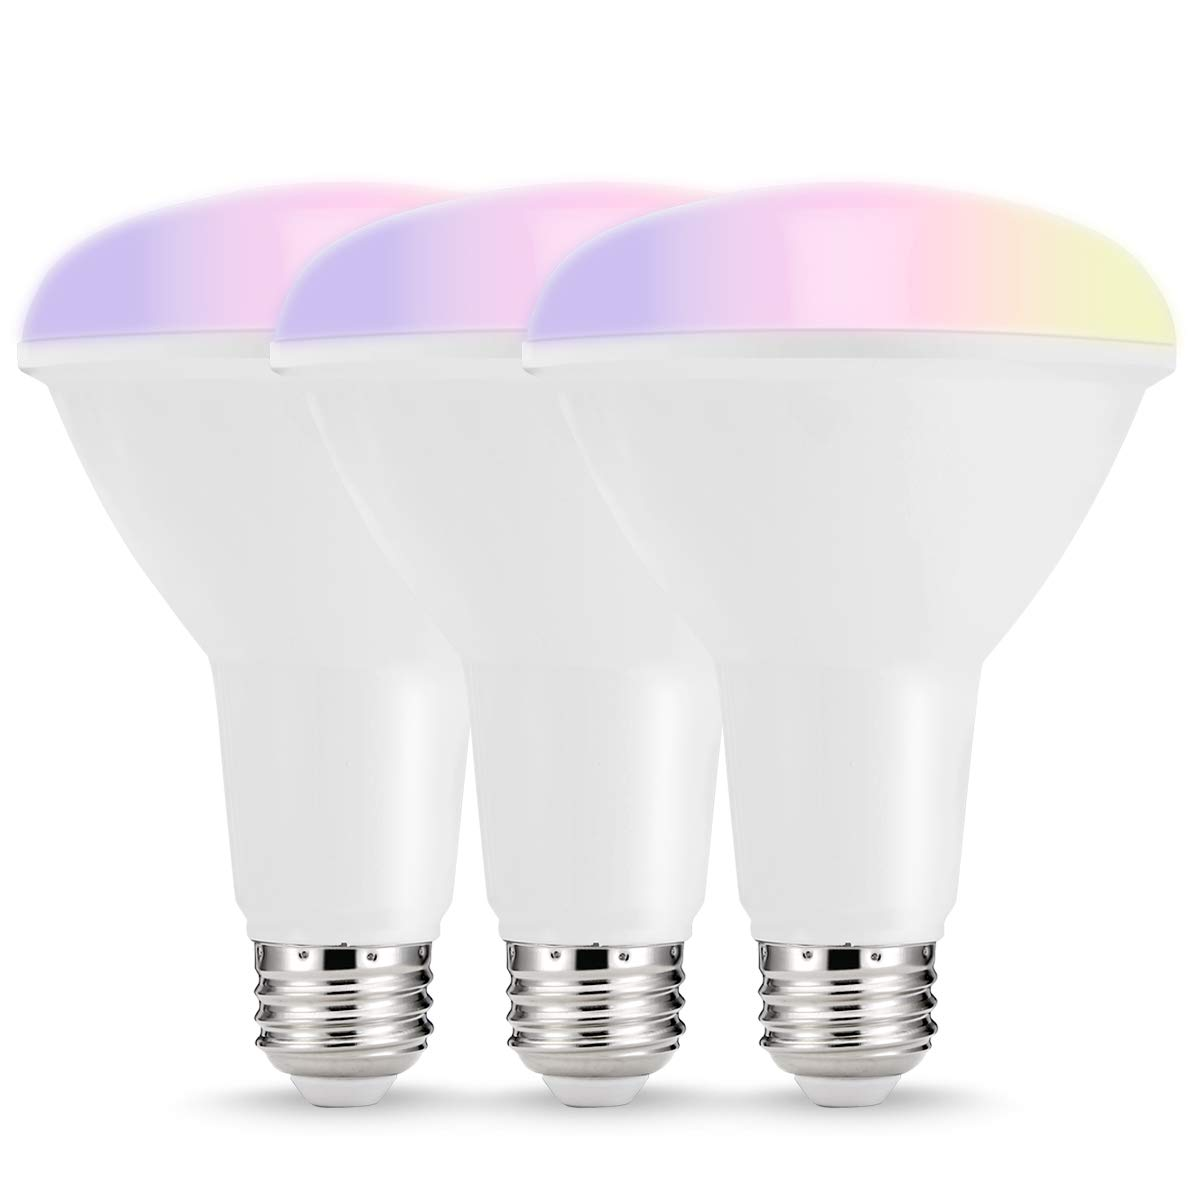 LOHAS Smart LED Bulbs, Multicolored WiFi LED Lights, BR30 Dimmable Recessed Light Bulbs, No Hub Required, 75W-80W Equivalent Flood Light, Compatible with Amazon Alexa and Google Assistant, 3 Pack